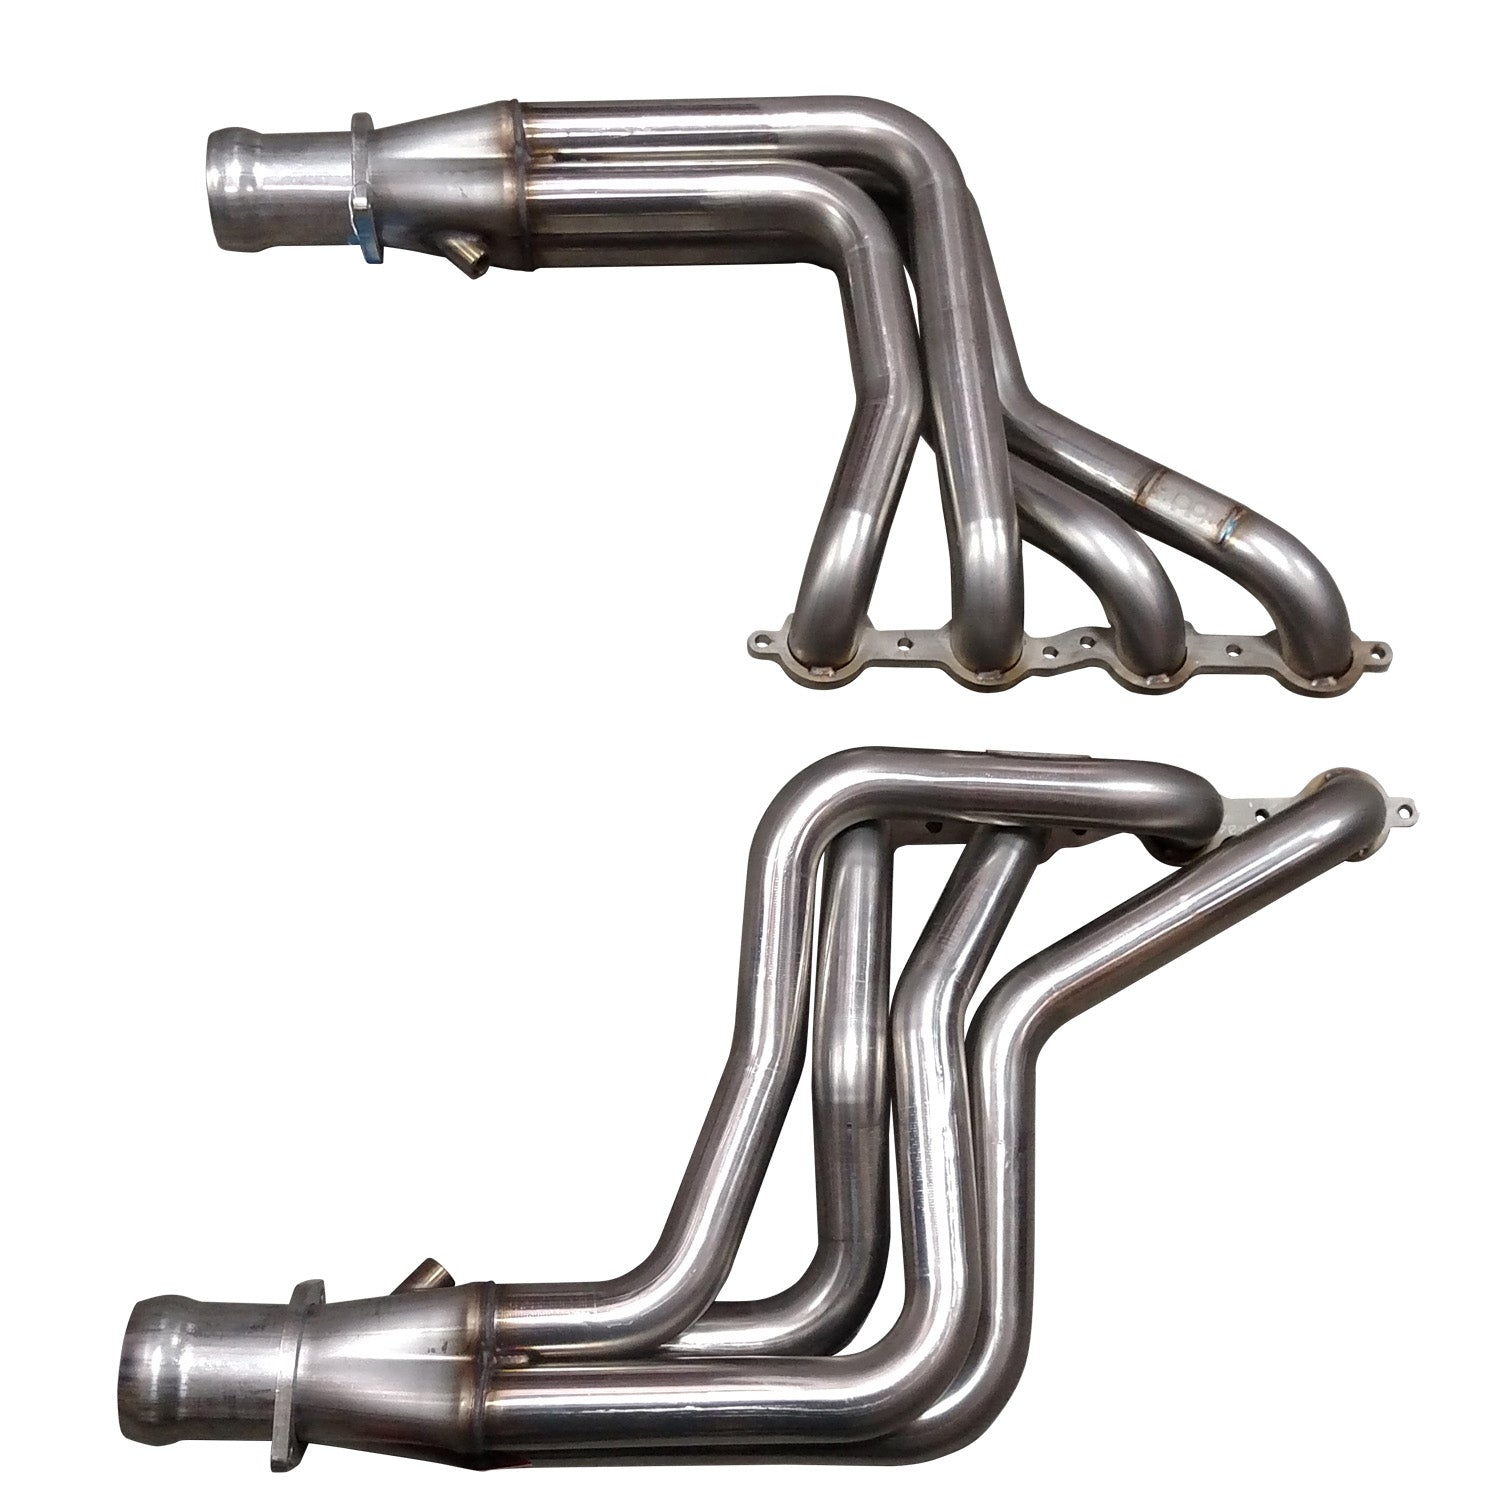 LSX Swap Header for 1968-1972 A-Body and 1970-1981 F-Body